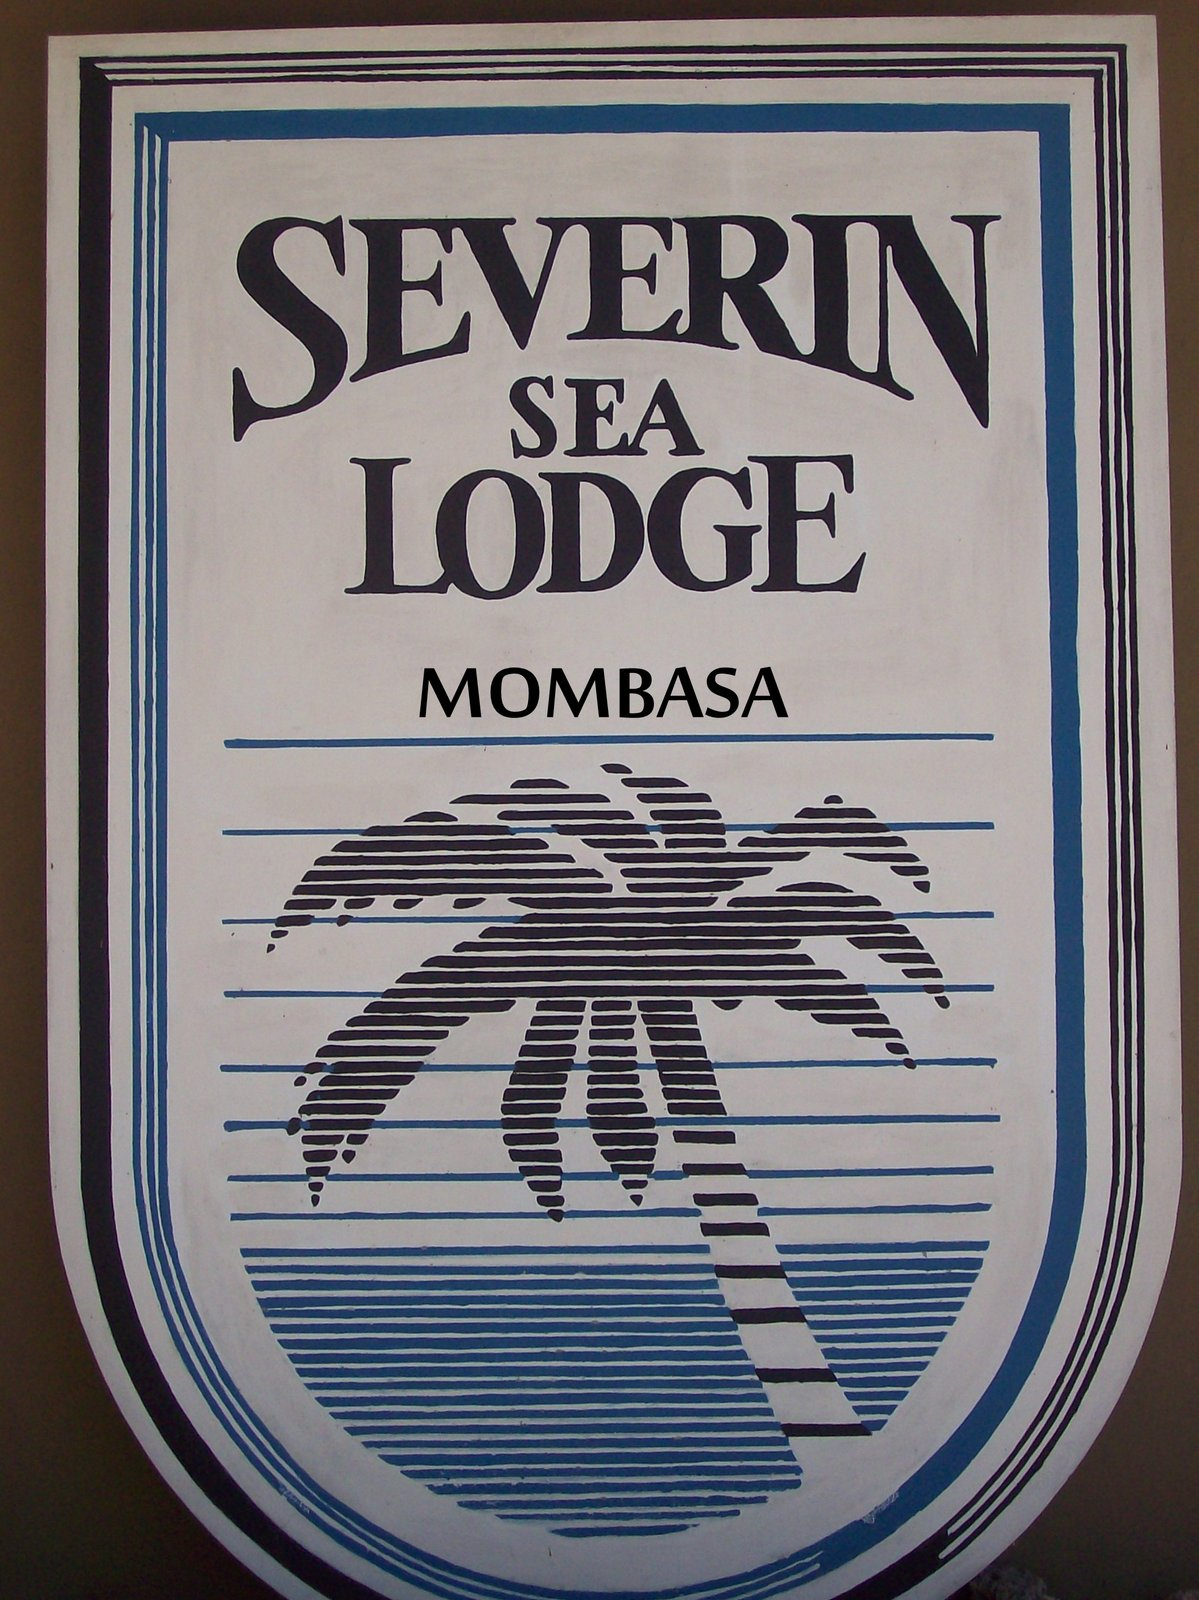 Severin Sea Lodge Mombasa